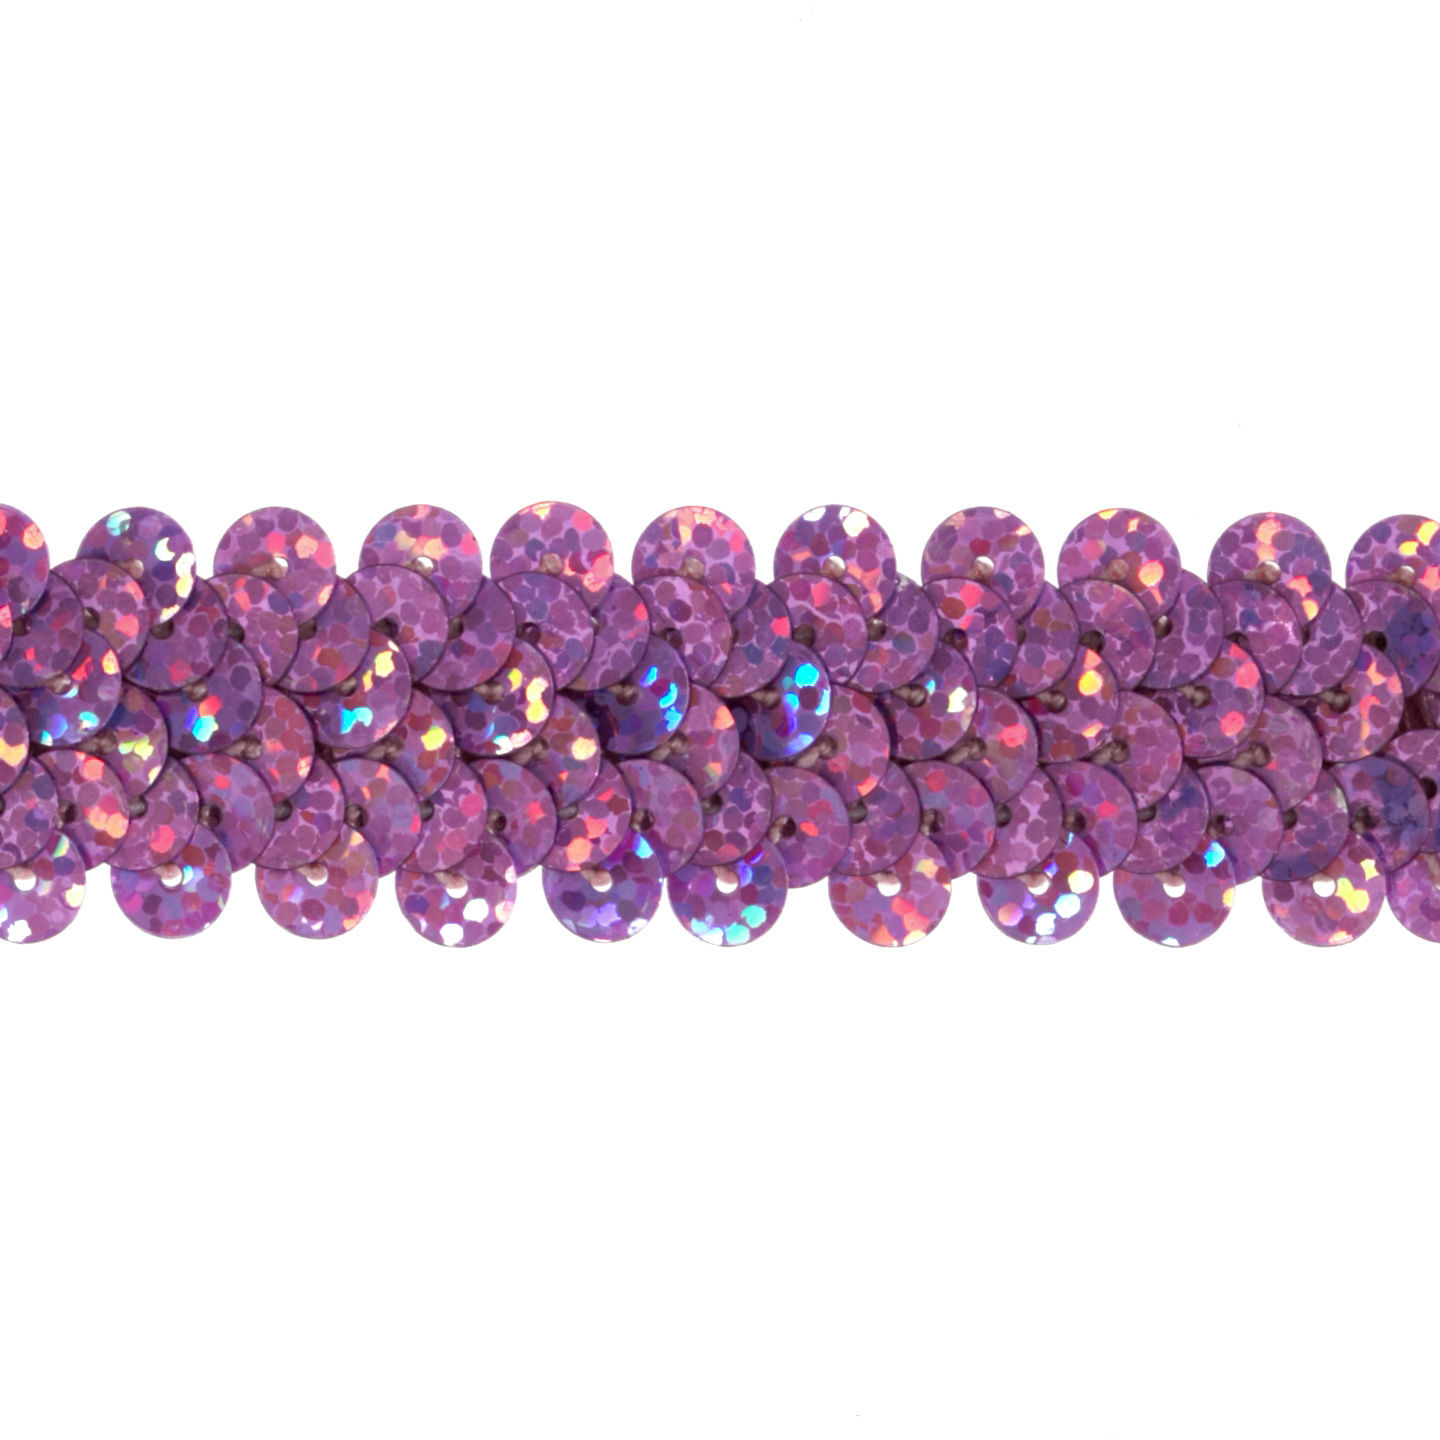 7/8'' Hologram Stretch Sequin Trim Fuchsia